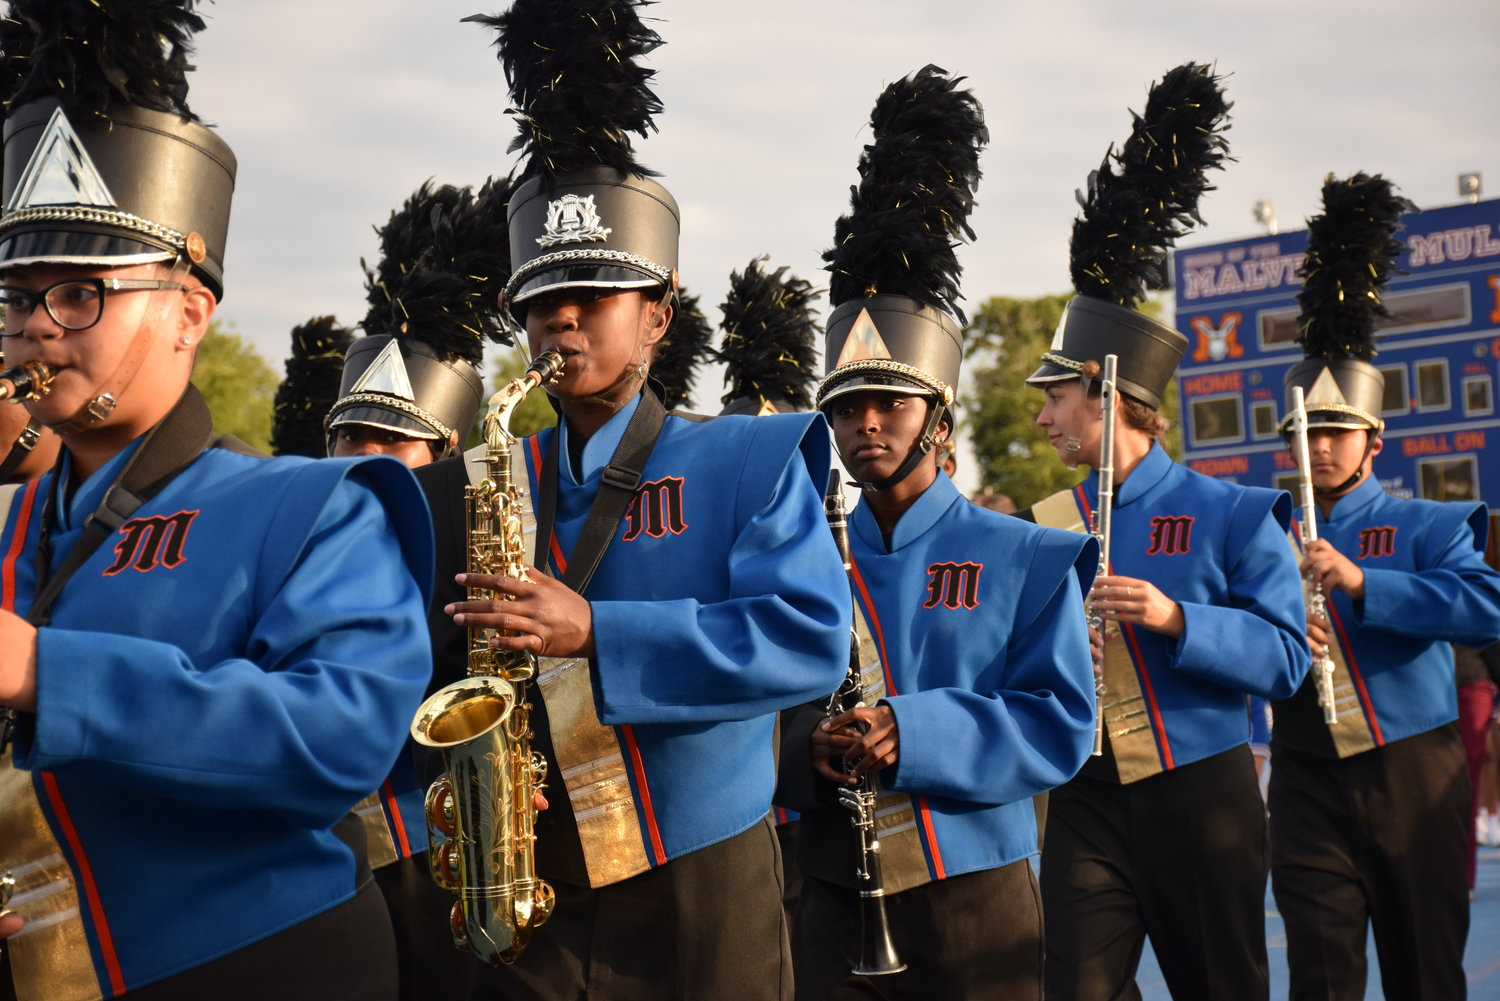 The Pride of Malverne Marching Band lined up to perform during Malverne High School's Homecoming parade on Oct. 5.